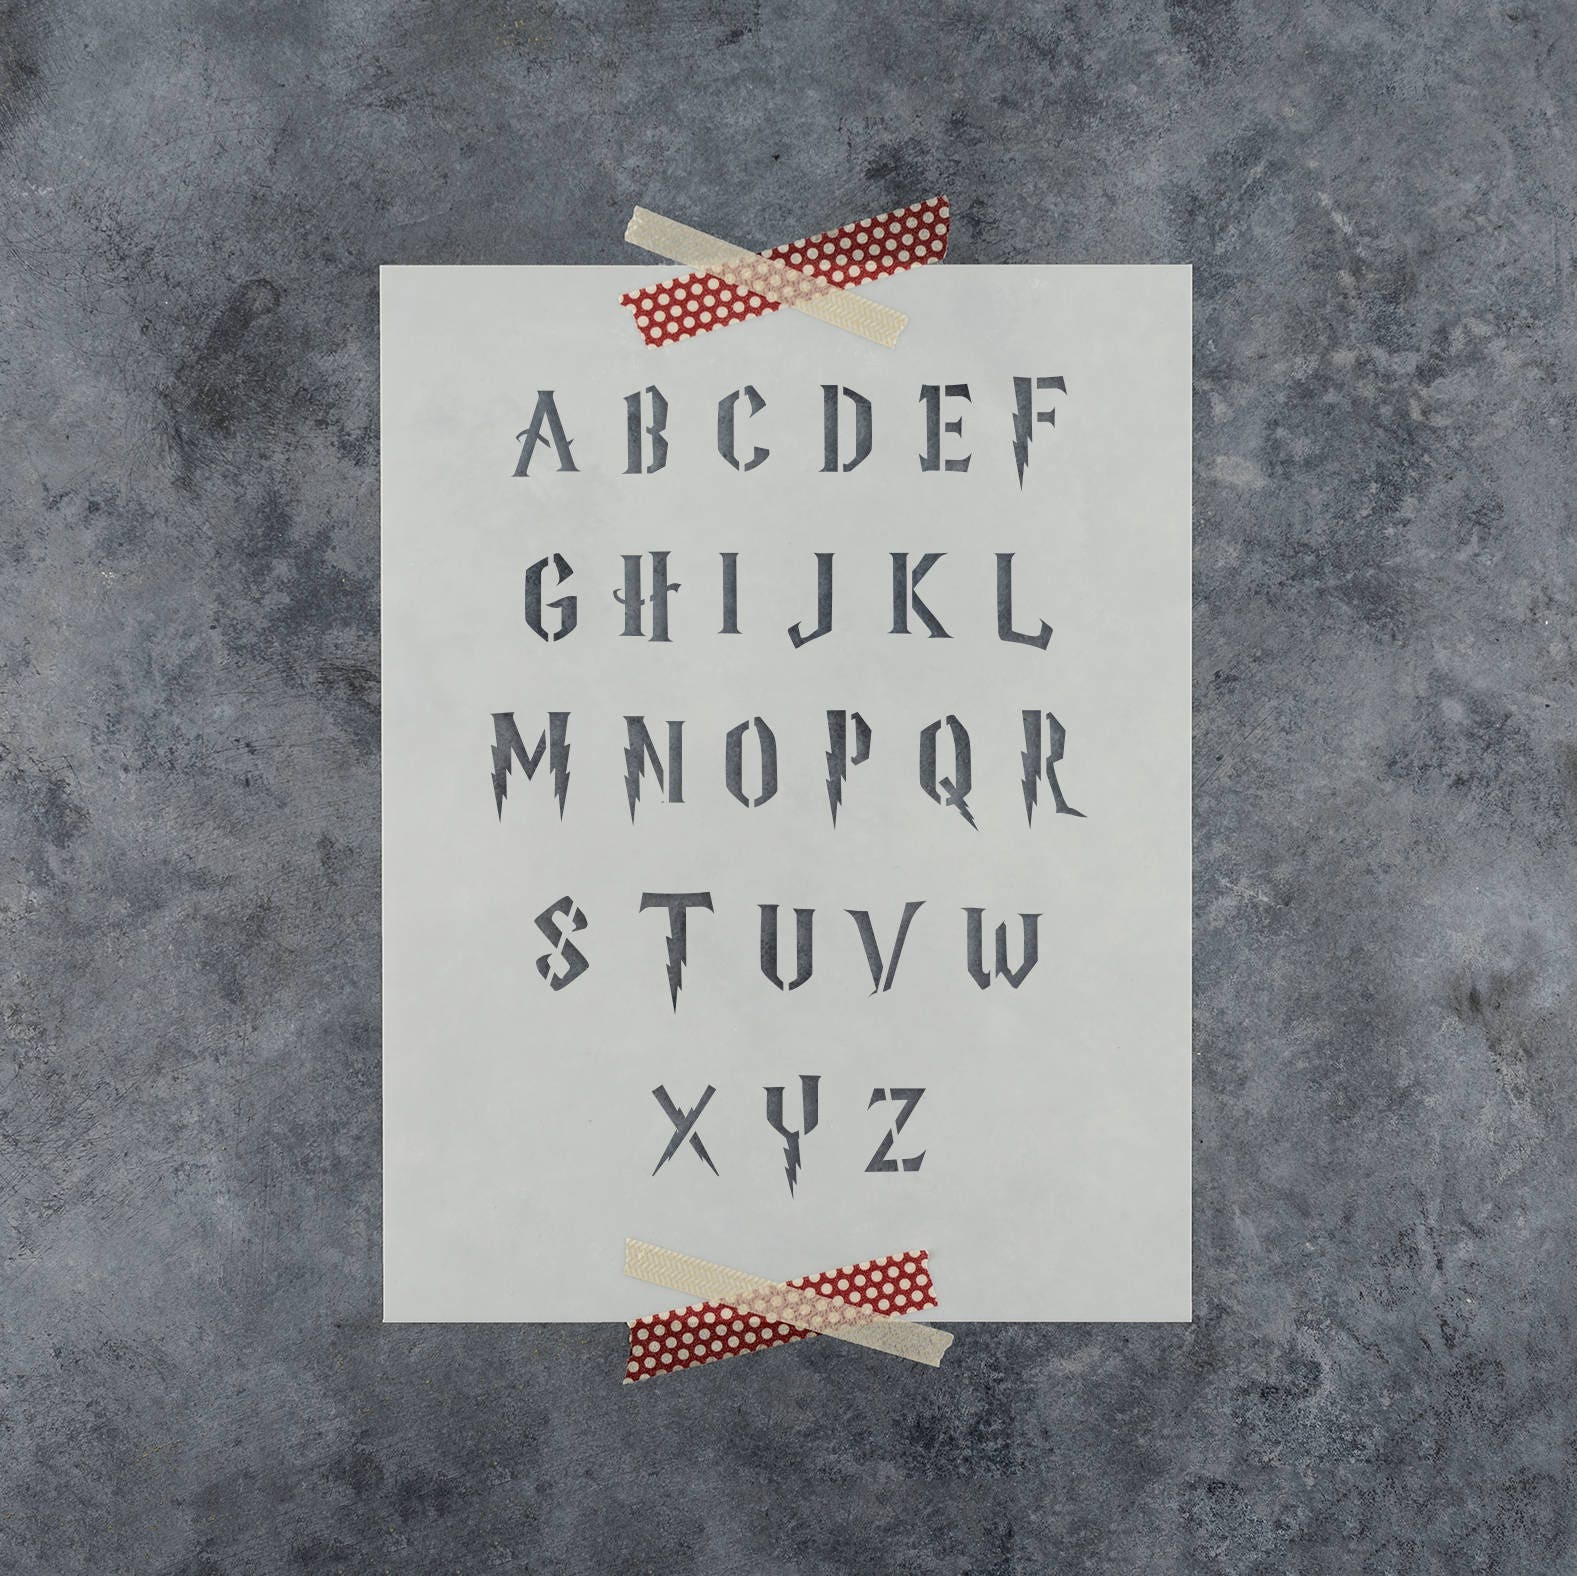 Harry potter stencil font full alphabet upper and lower case harry potter stencil reusable letter stencil template in harry potter style font alphabet stencils amipublicfo Gallery